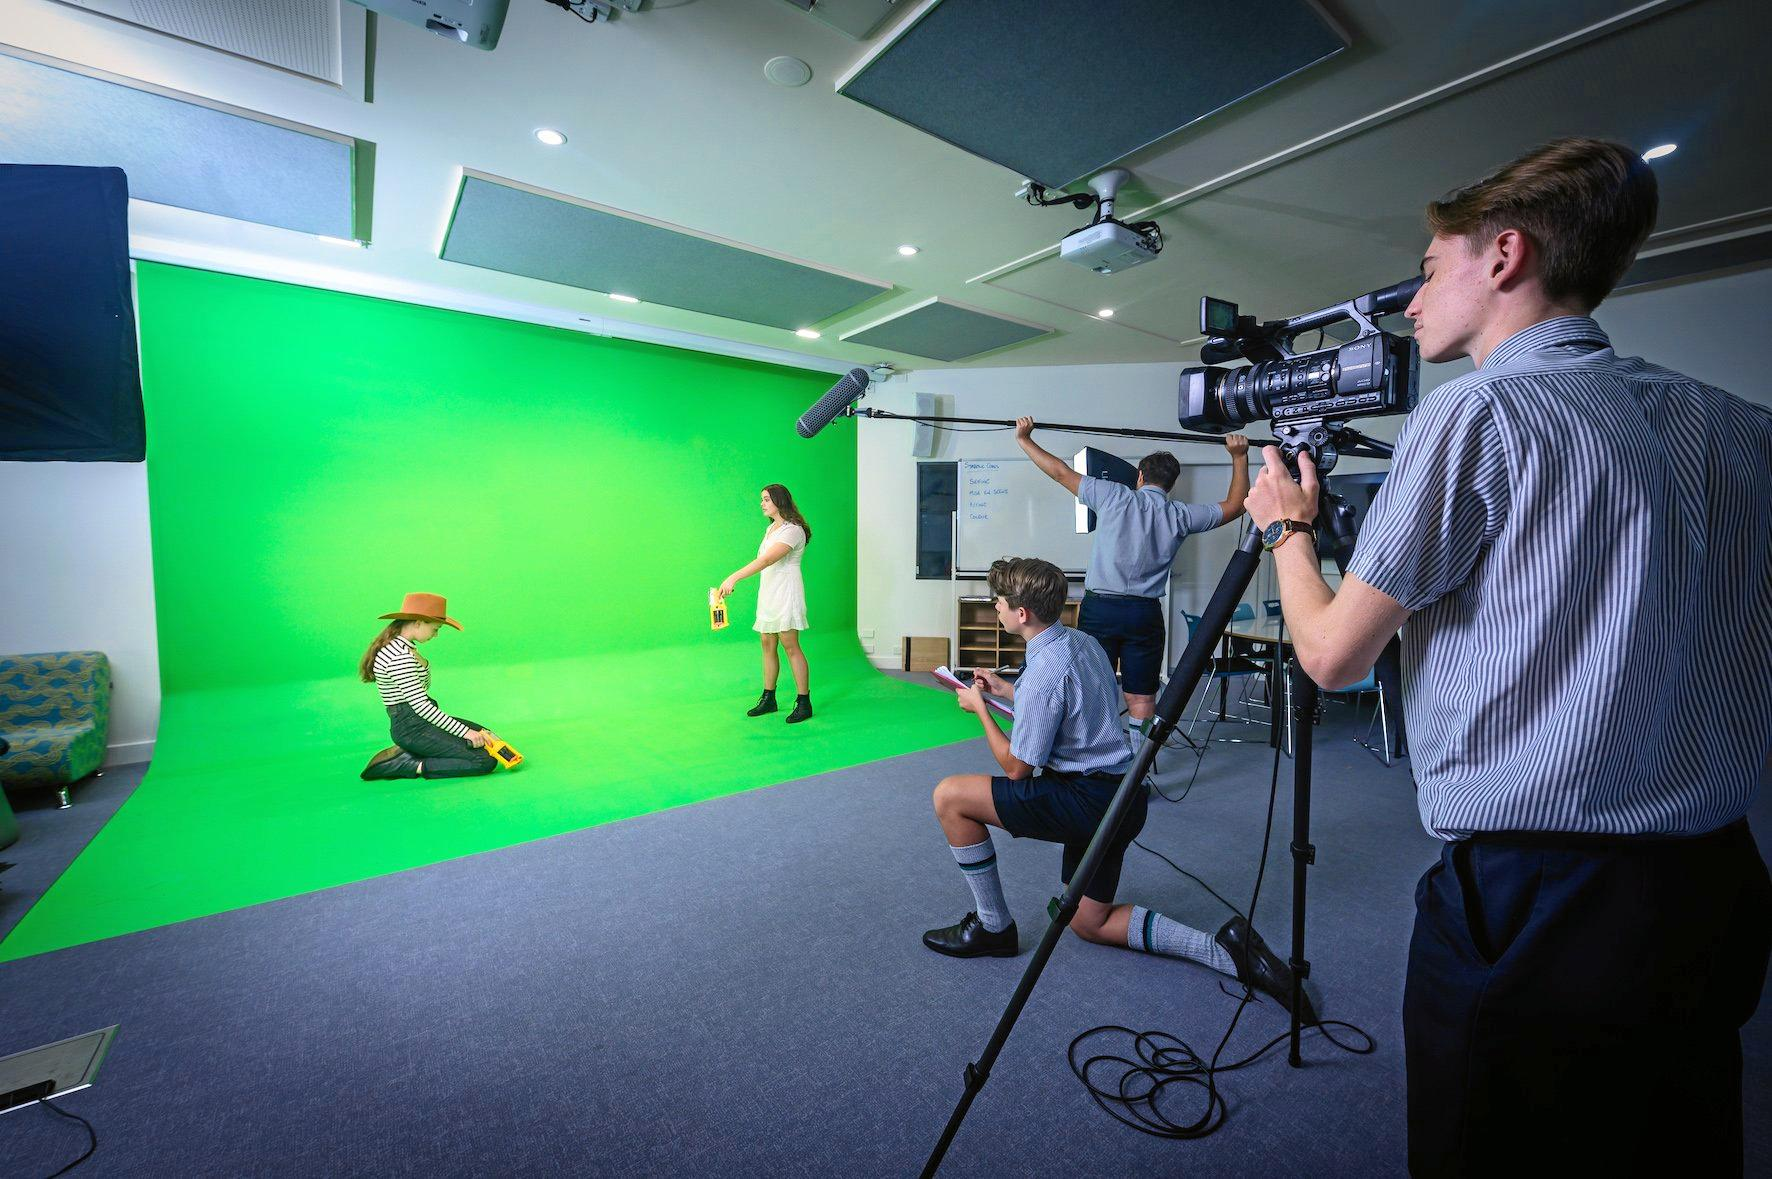 Flinders' new Digital Zone is a dedicated space for students from Years 7 to 12 to explore areas of digital technology, film, TV, new media and electronics.